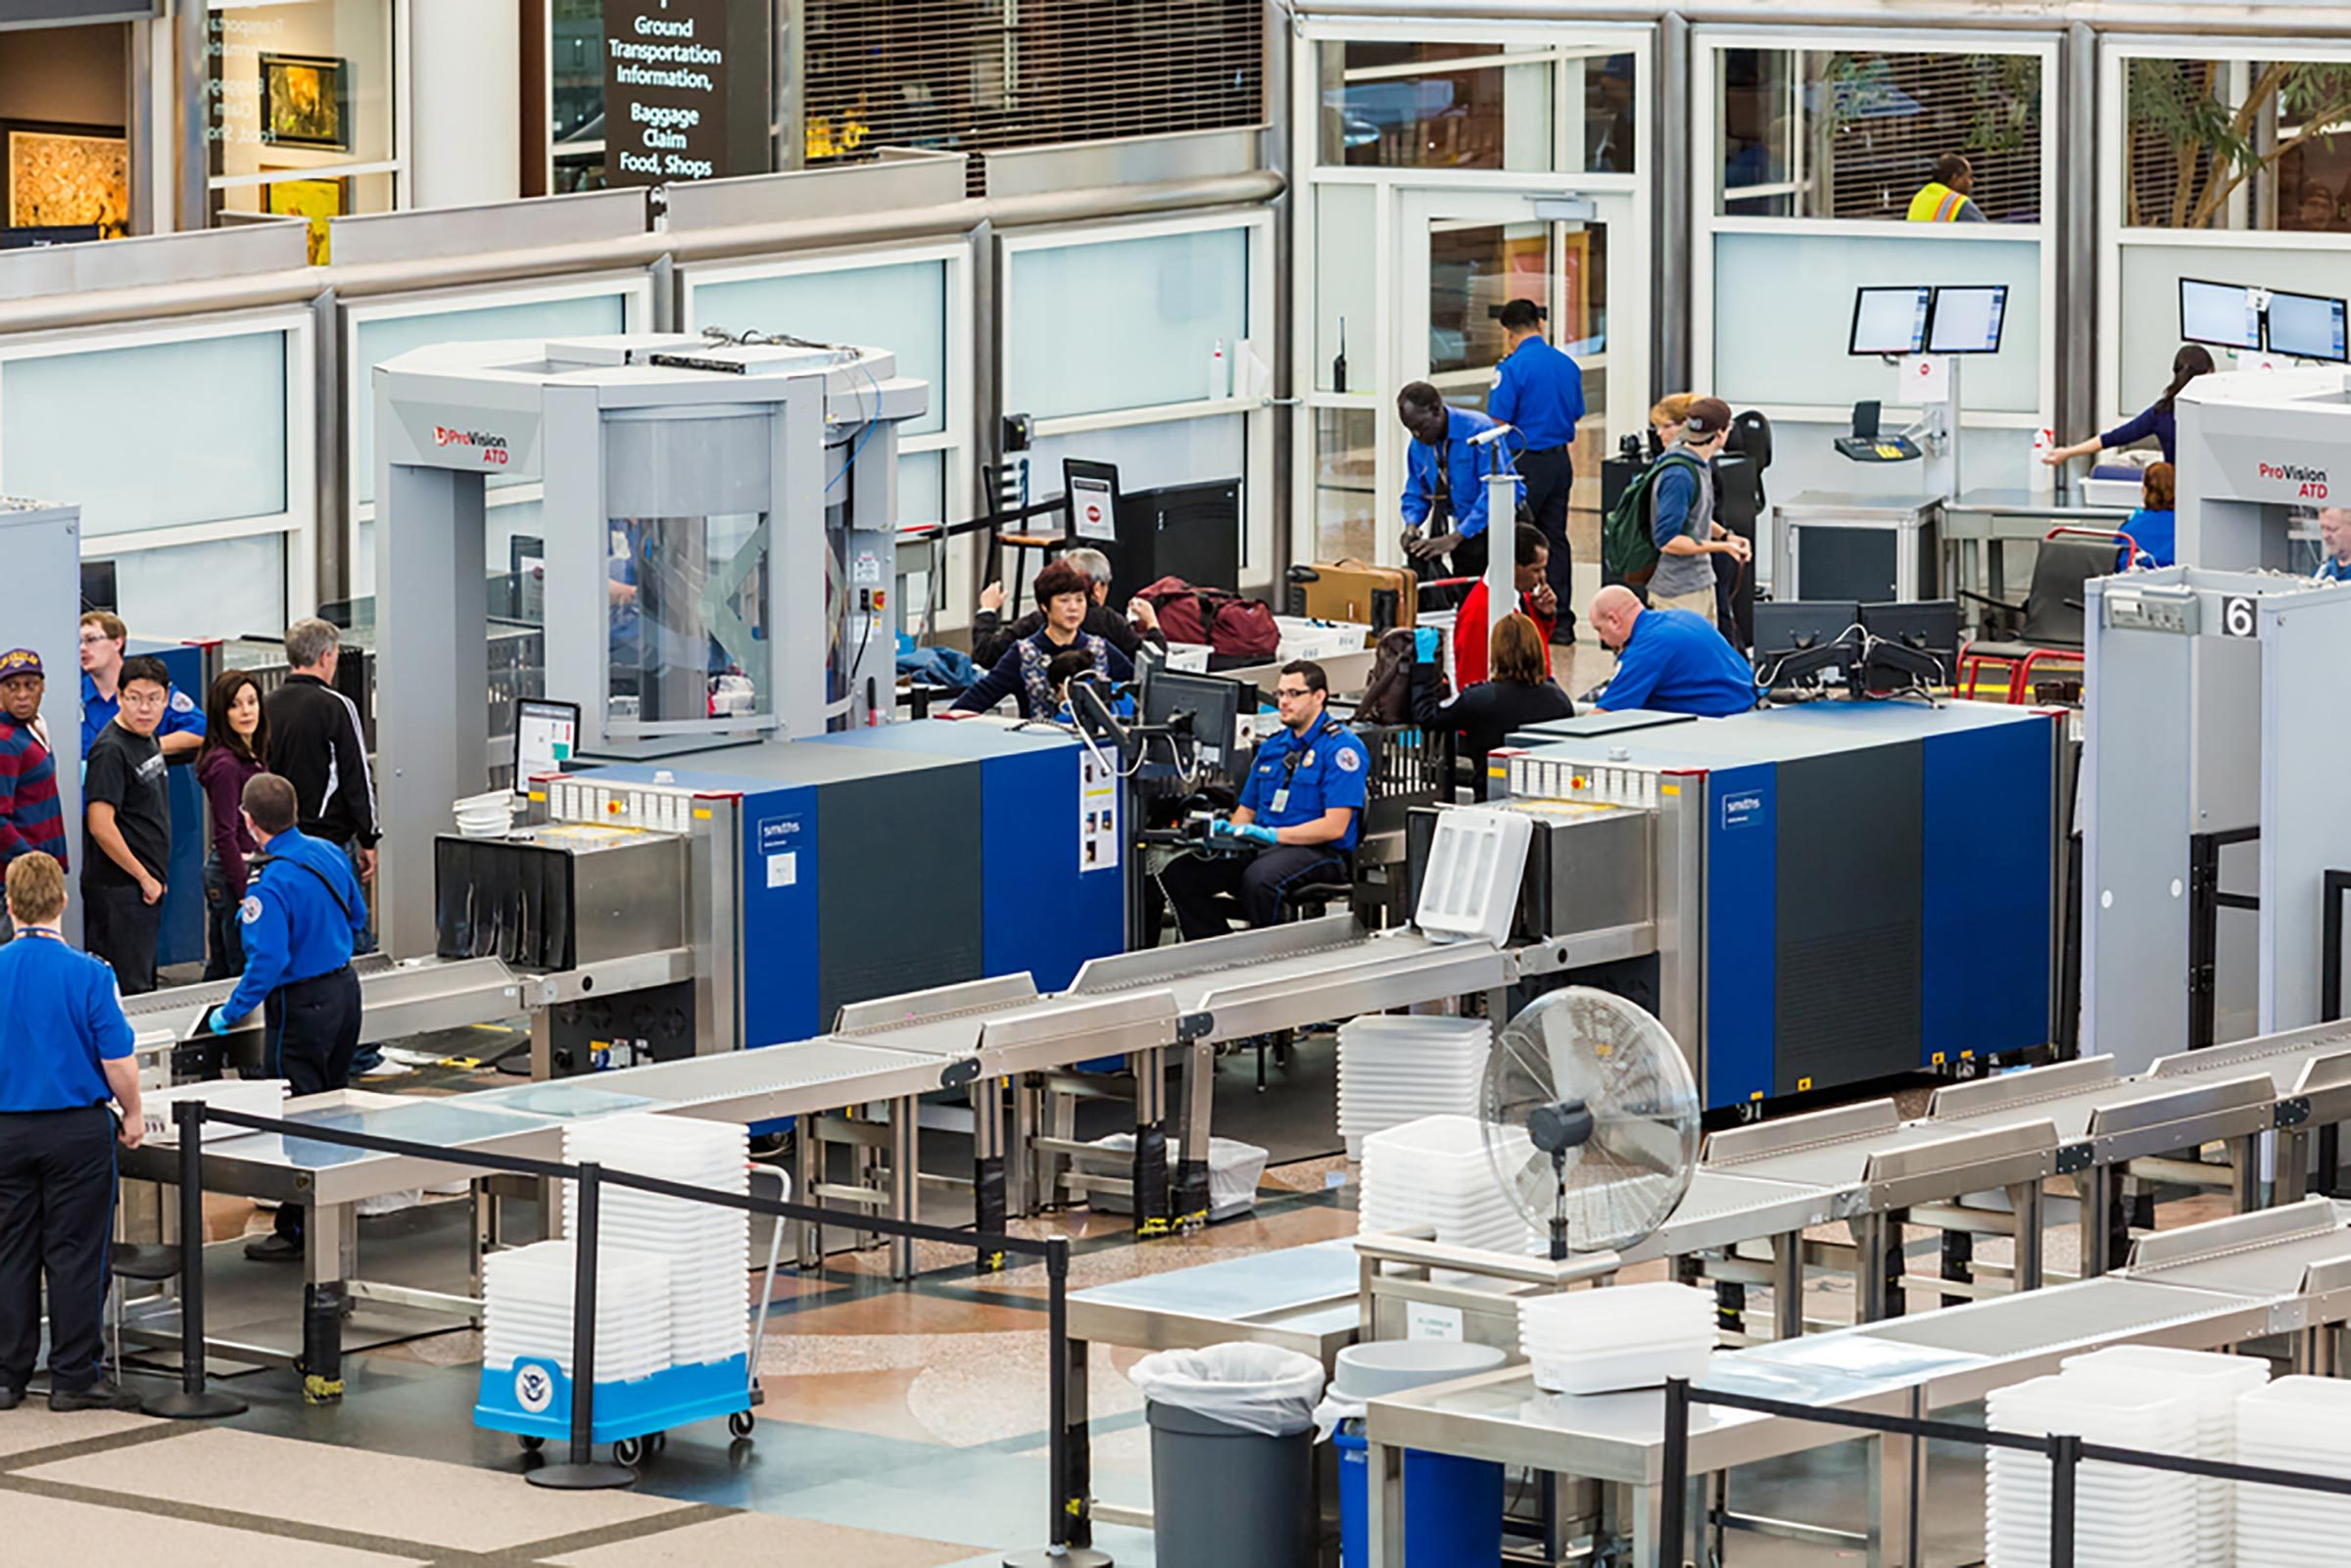 TSA Security: 13 Things Officers Won't Tell You | Reader's Digest